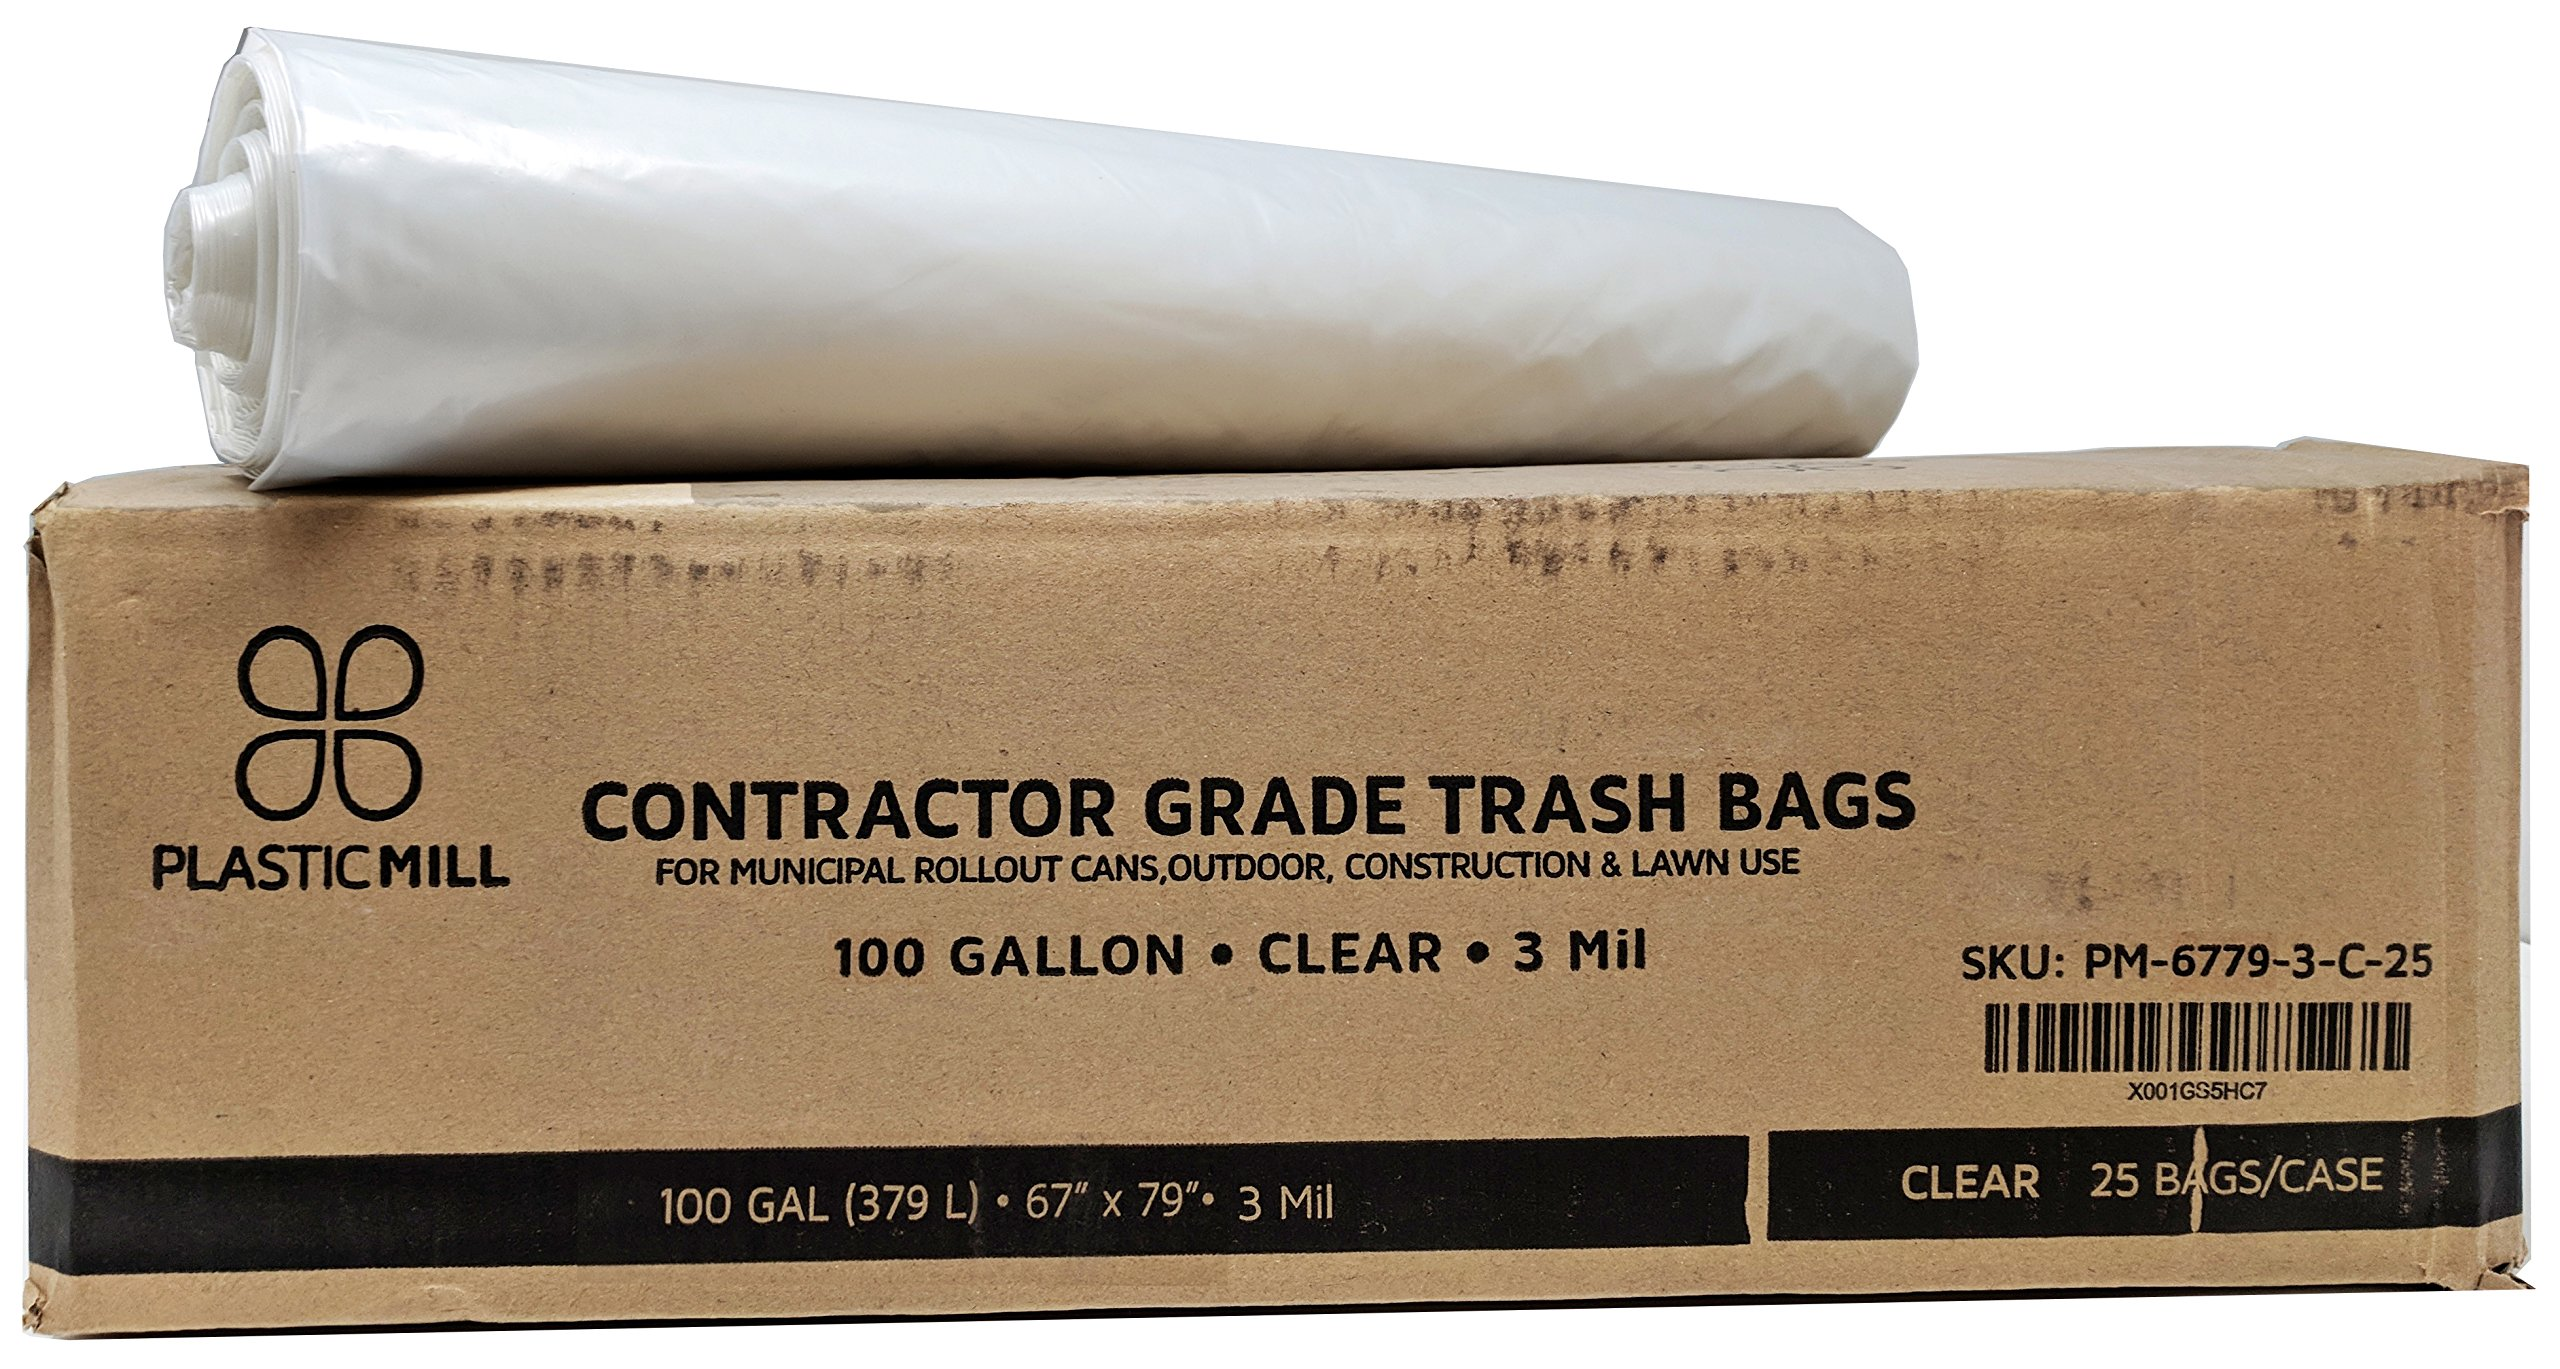 PlasticMill 100 Gallon, Clear, 3 Mil, 67x79, 25 Bags/Case, Gang Folded, Ultra Heavy Duty, Garbage Bags/Trash Can Liners/Contractor Bags.